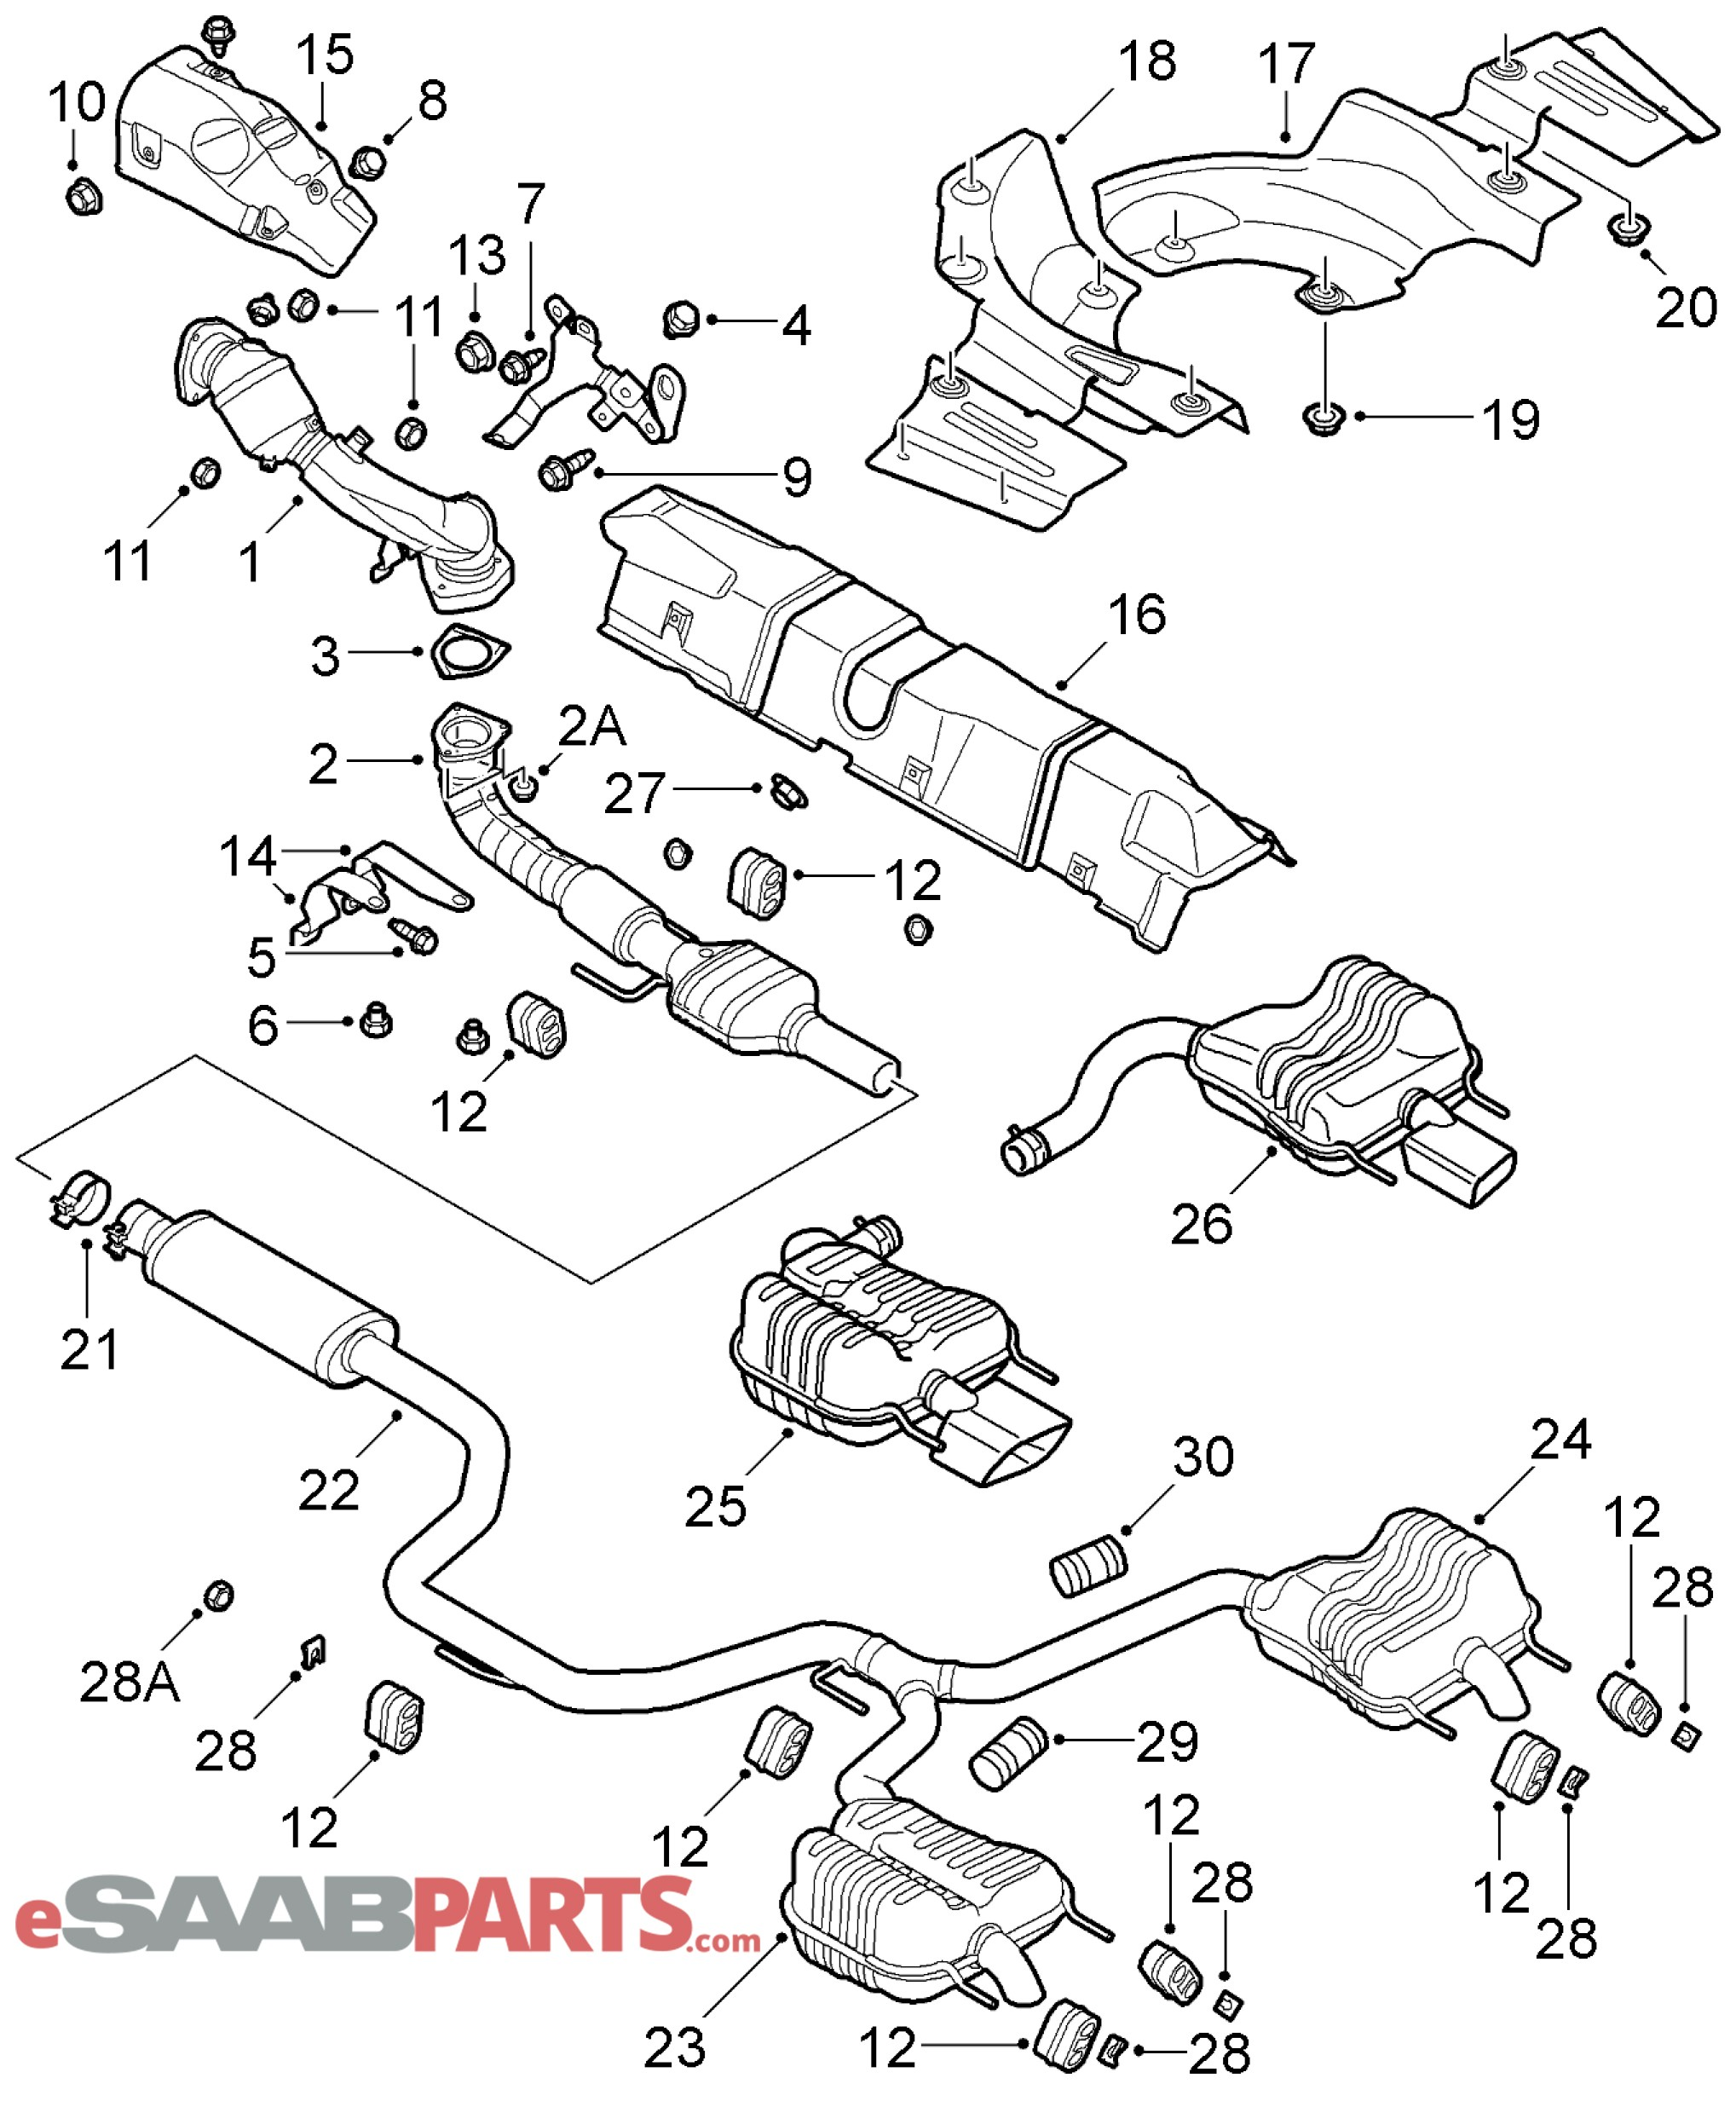 Exhaust System Parts Diagram Esaabparts Saab 9 3 9440 Engine Parts Exhaust System Of Exhaust System Parts Diagram Chev Gmc